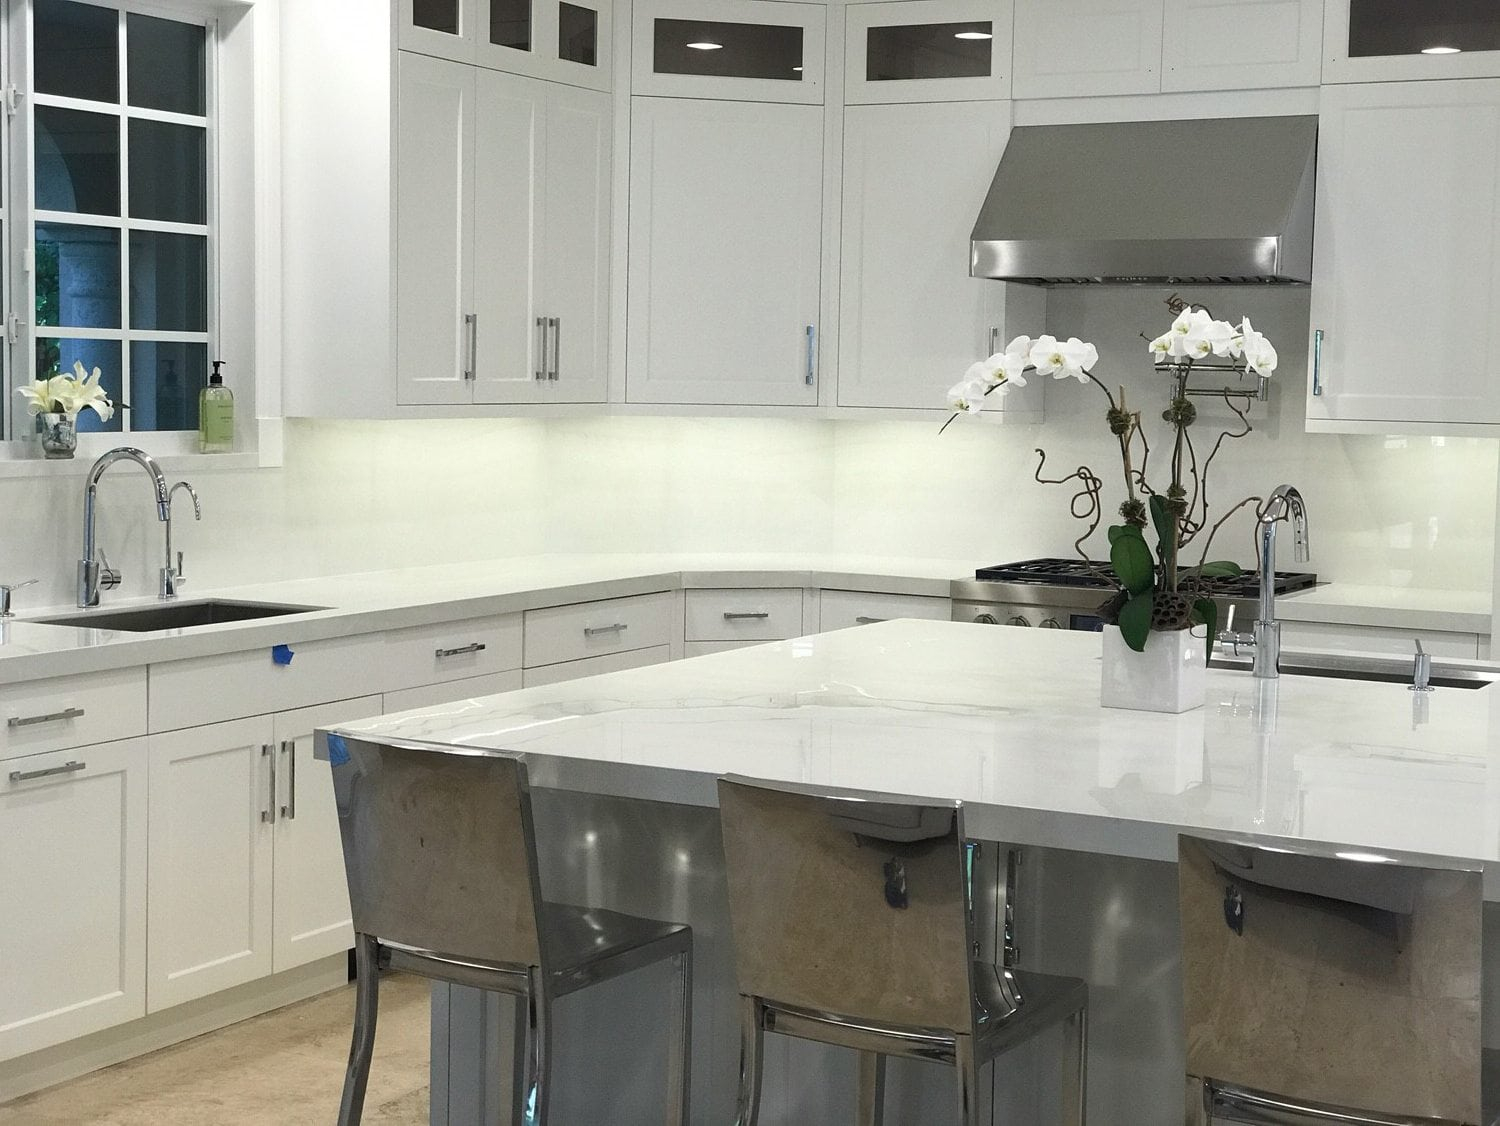 Premiere Italian Company Showcases Porcelain Countertops And Surfaces That Incorporate Cutting Edge Science And Technology Britto Charette